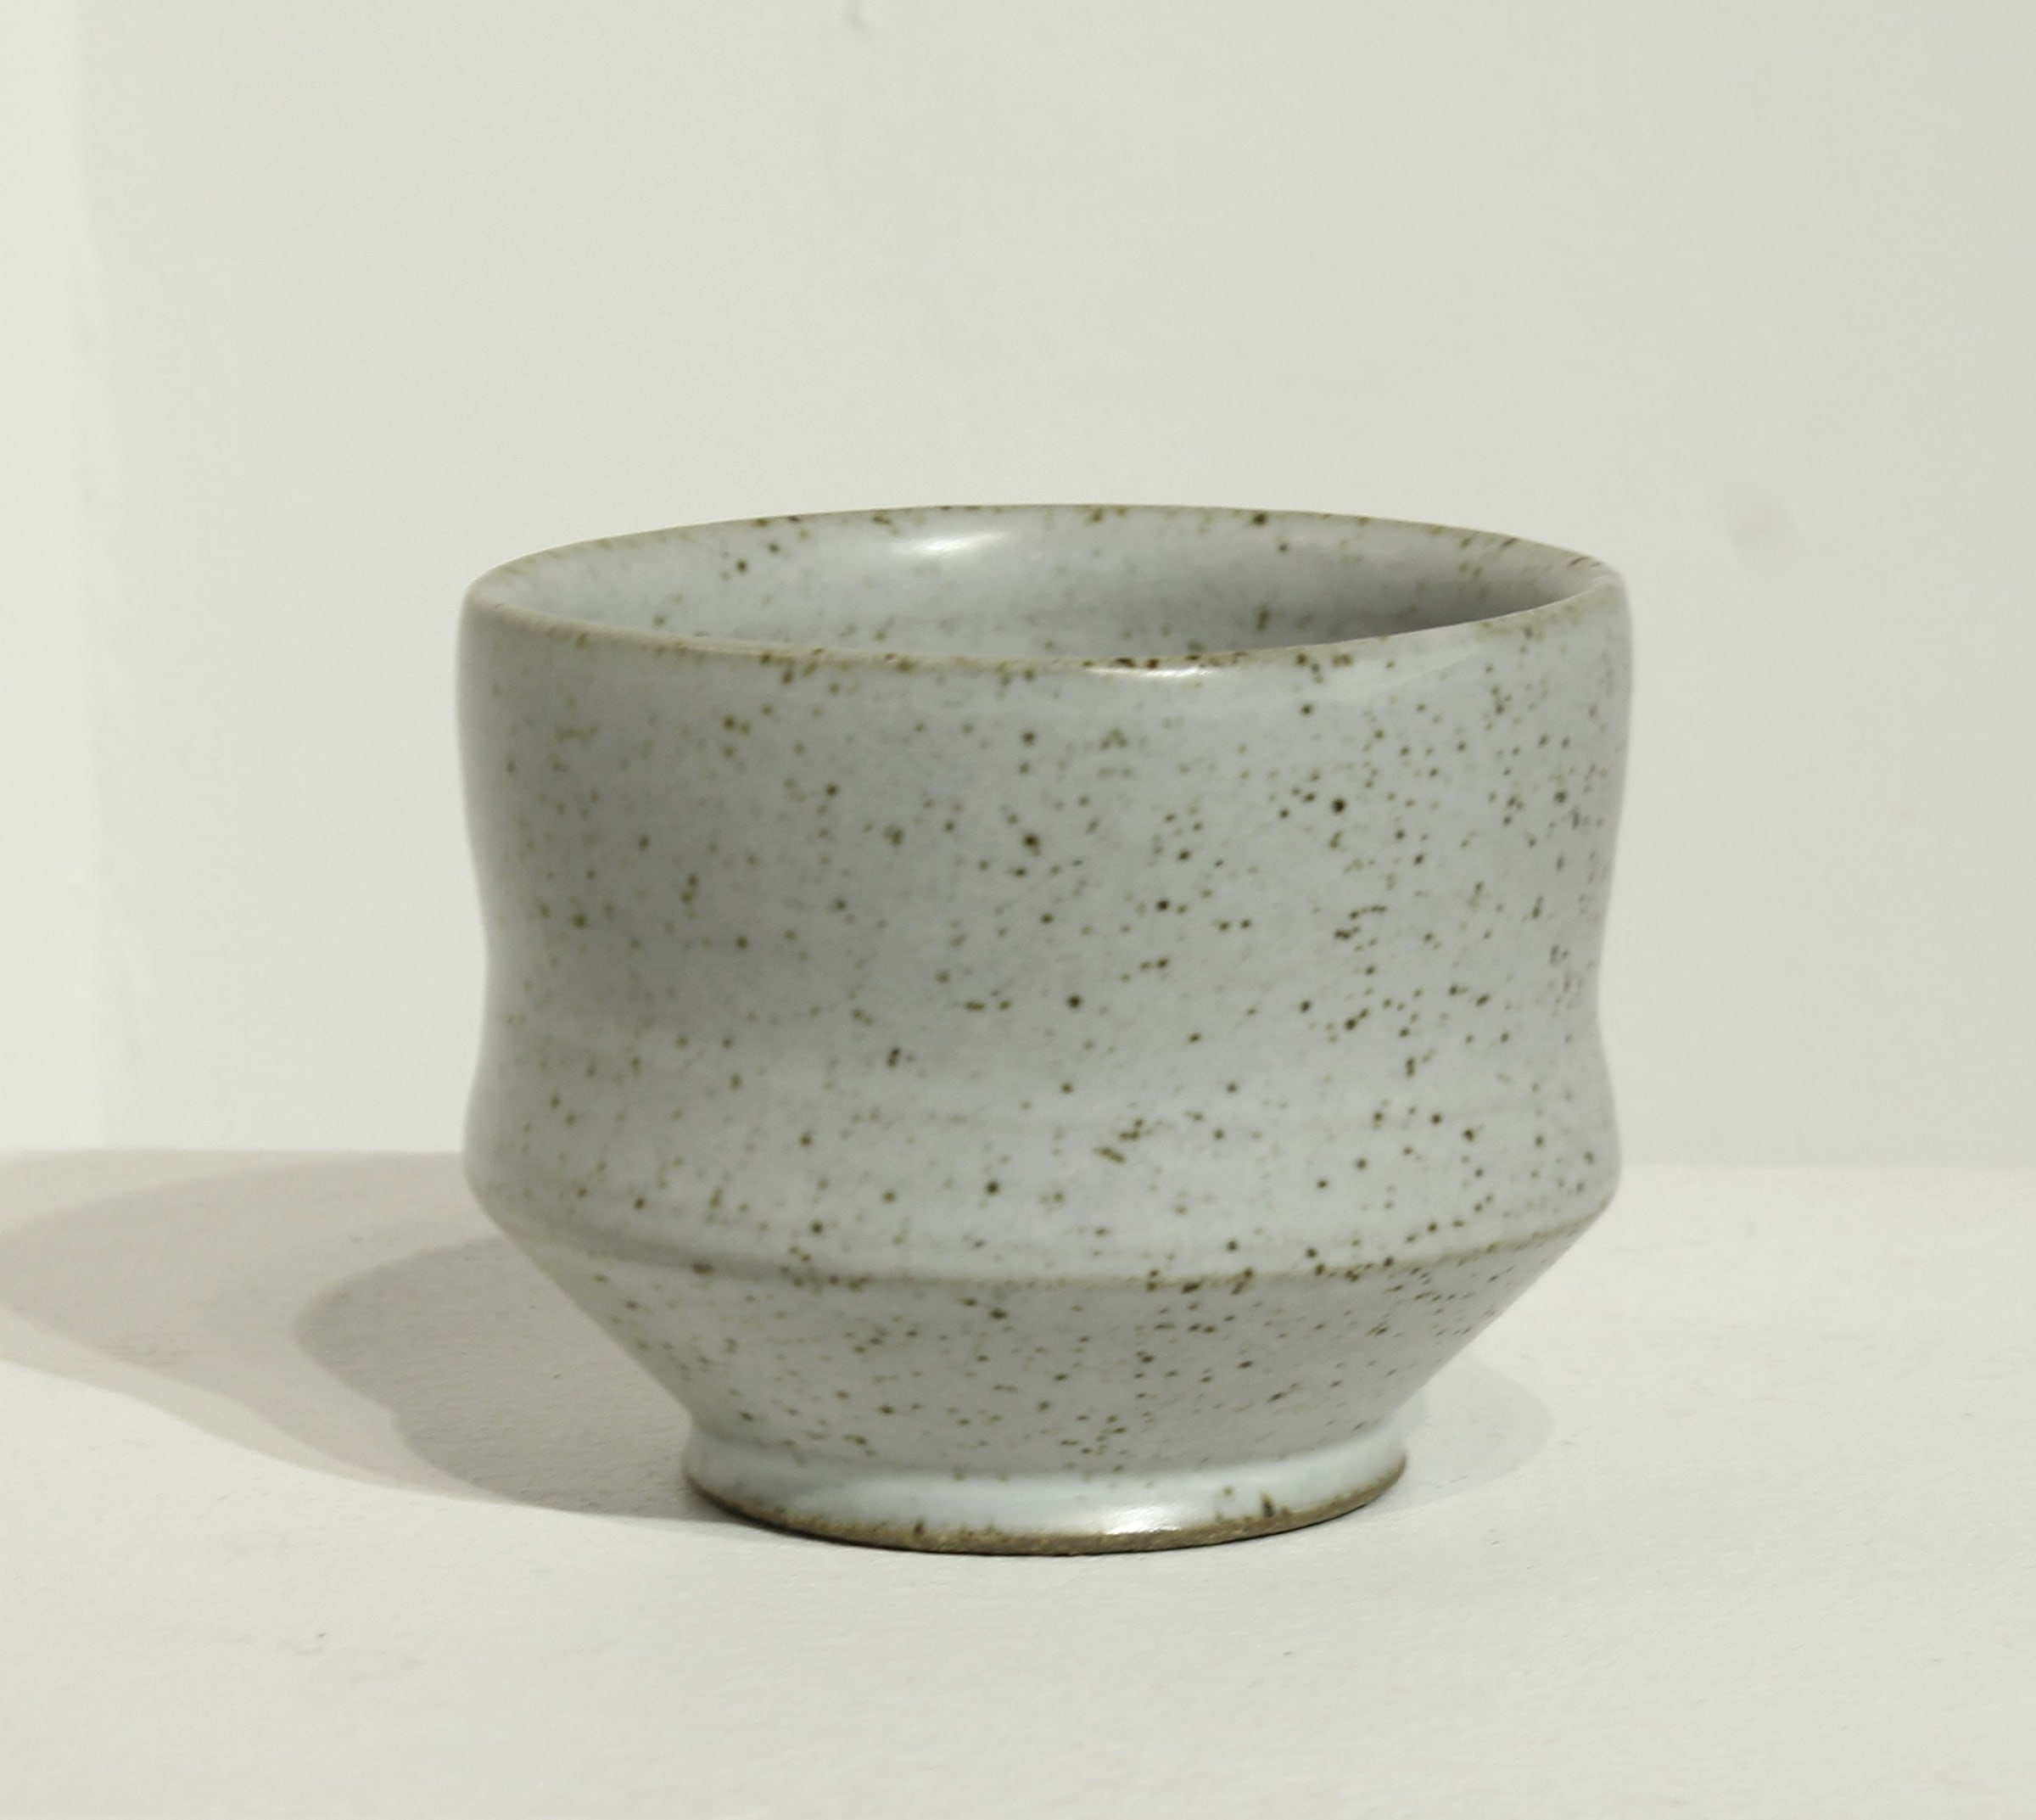 """<span class=""""link fancybox-details-link""""><a href=""""/artists/33-sun-kim/works/5107-sun-kim-cup-2017/"""">View Detail Page</a></span><div class=""""artist""""><strong>Sun Kim</strong></div> <div class=""""title""""><em>Cup</em>, 2017</div> <div class=""""signed_and_dated"""">stamped by the artist</div> <div class=""""medium"""">porcelain</div> <div class=""""dimensions"""">h. 7.5 x w. 9.5 cm </div>"""